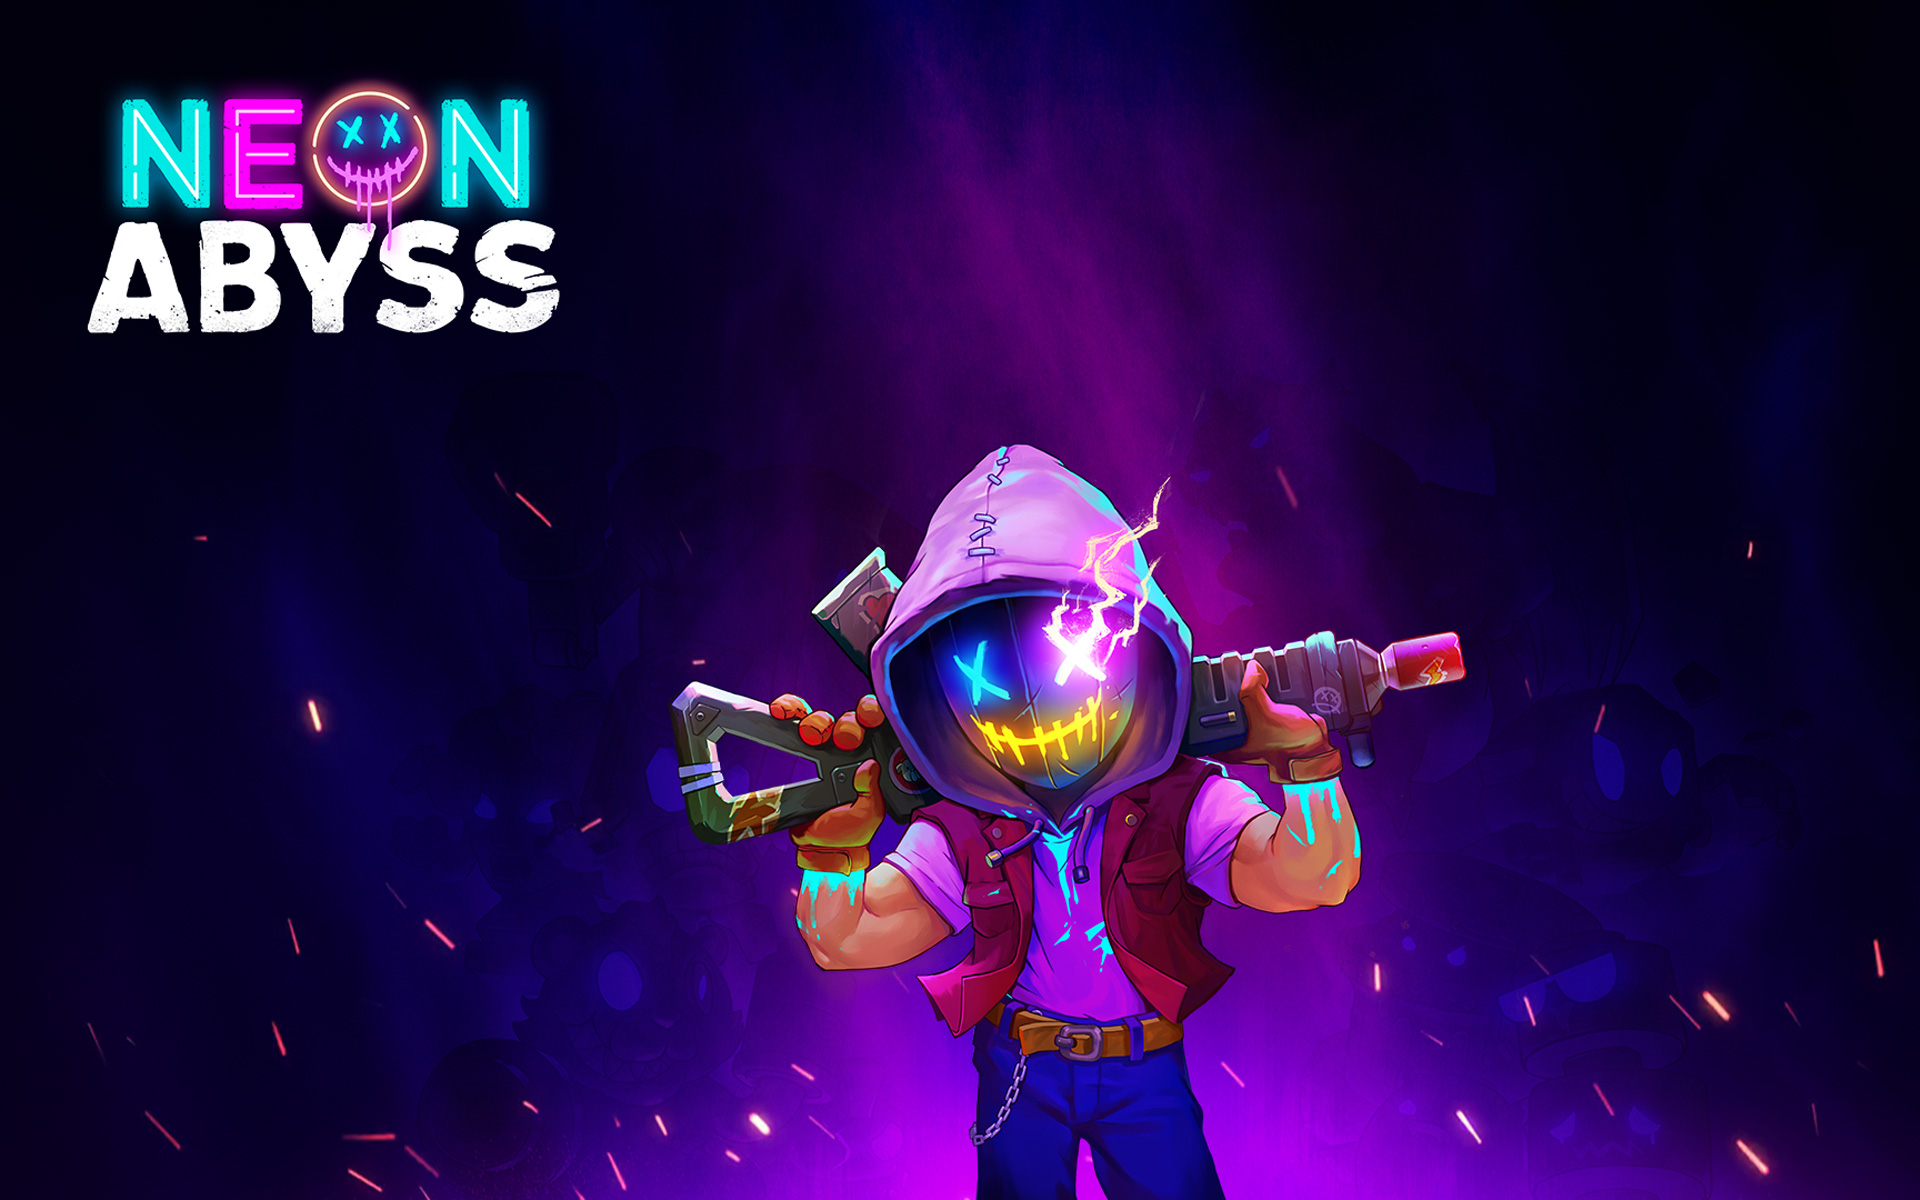 Neon Abyss Wallpaper in 1920x1200